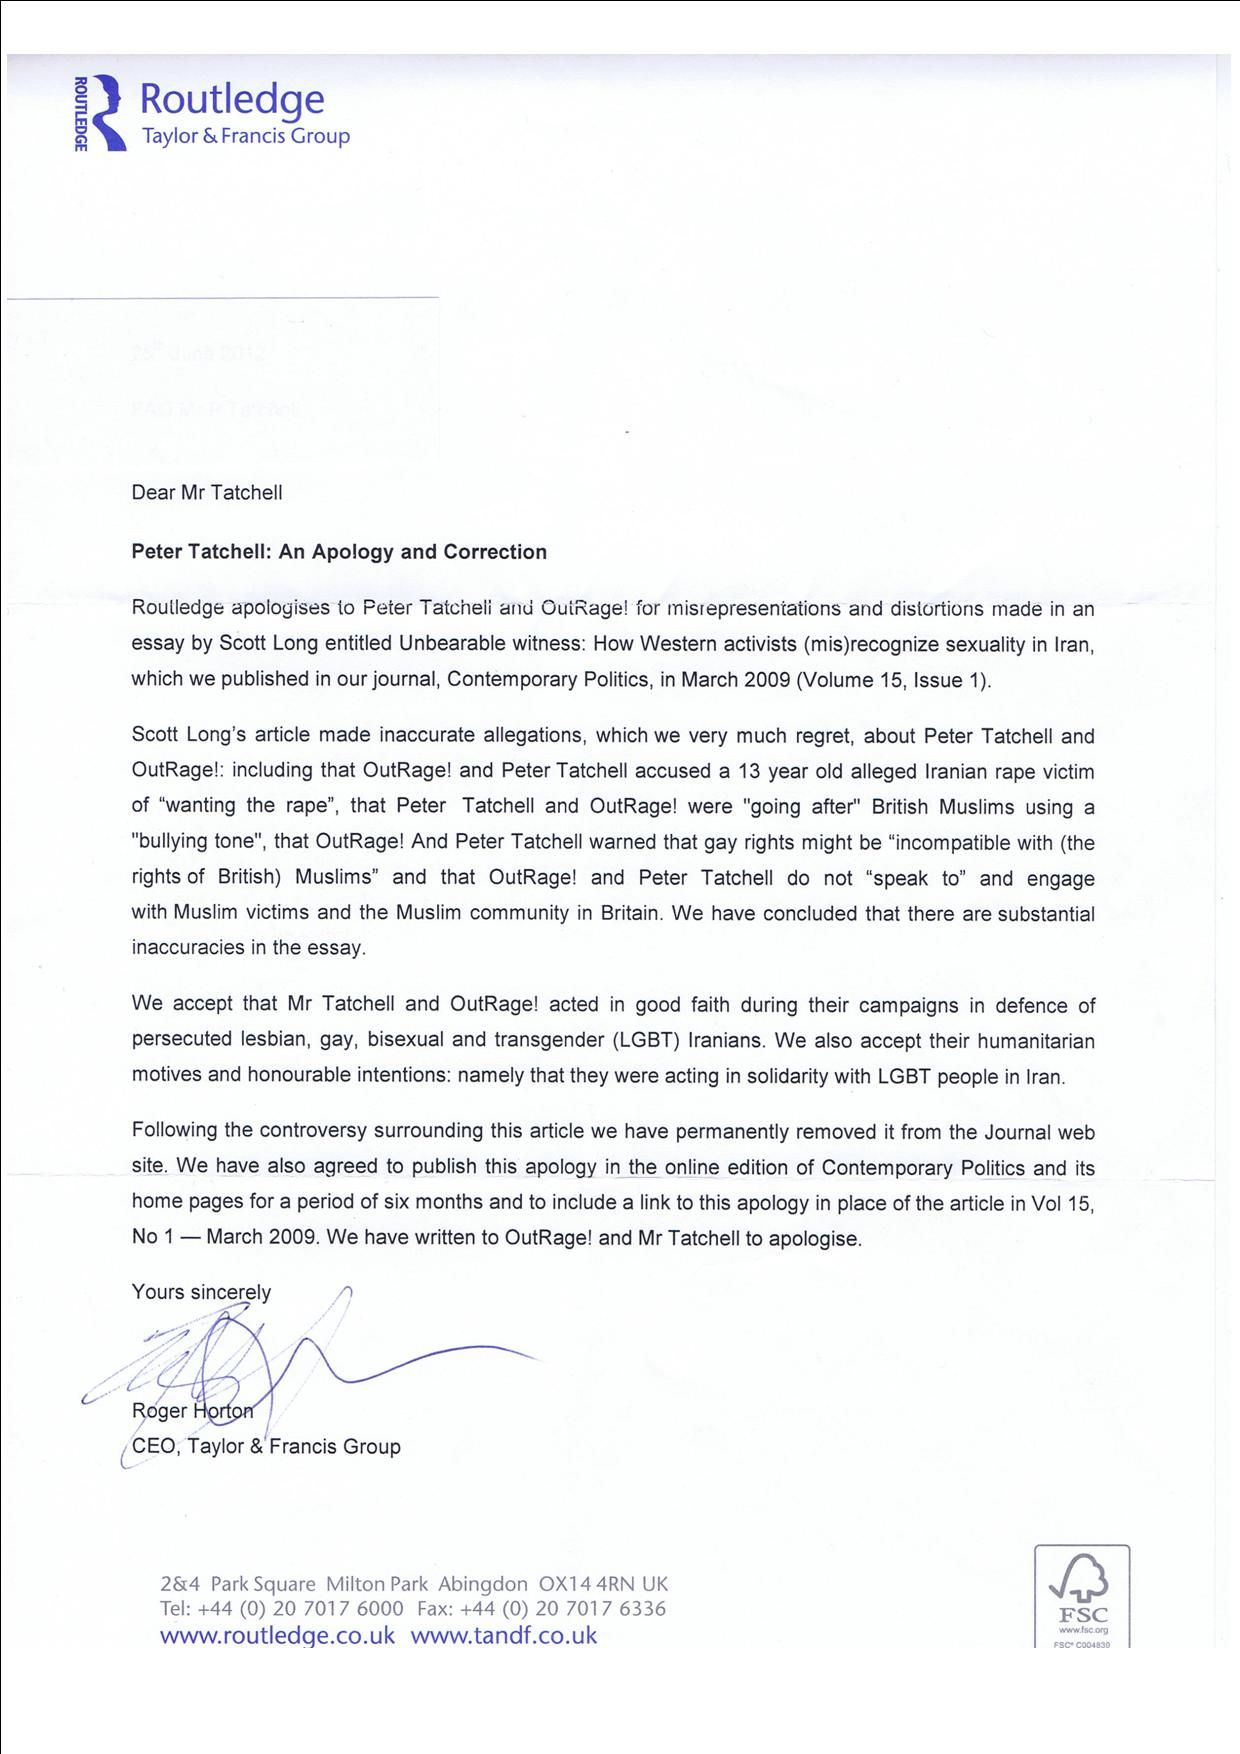 Copy Of Routledge Letter Of Apology To Peter Tatchell Peterletter